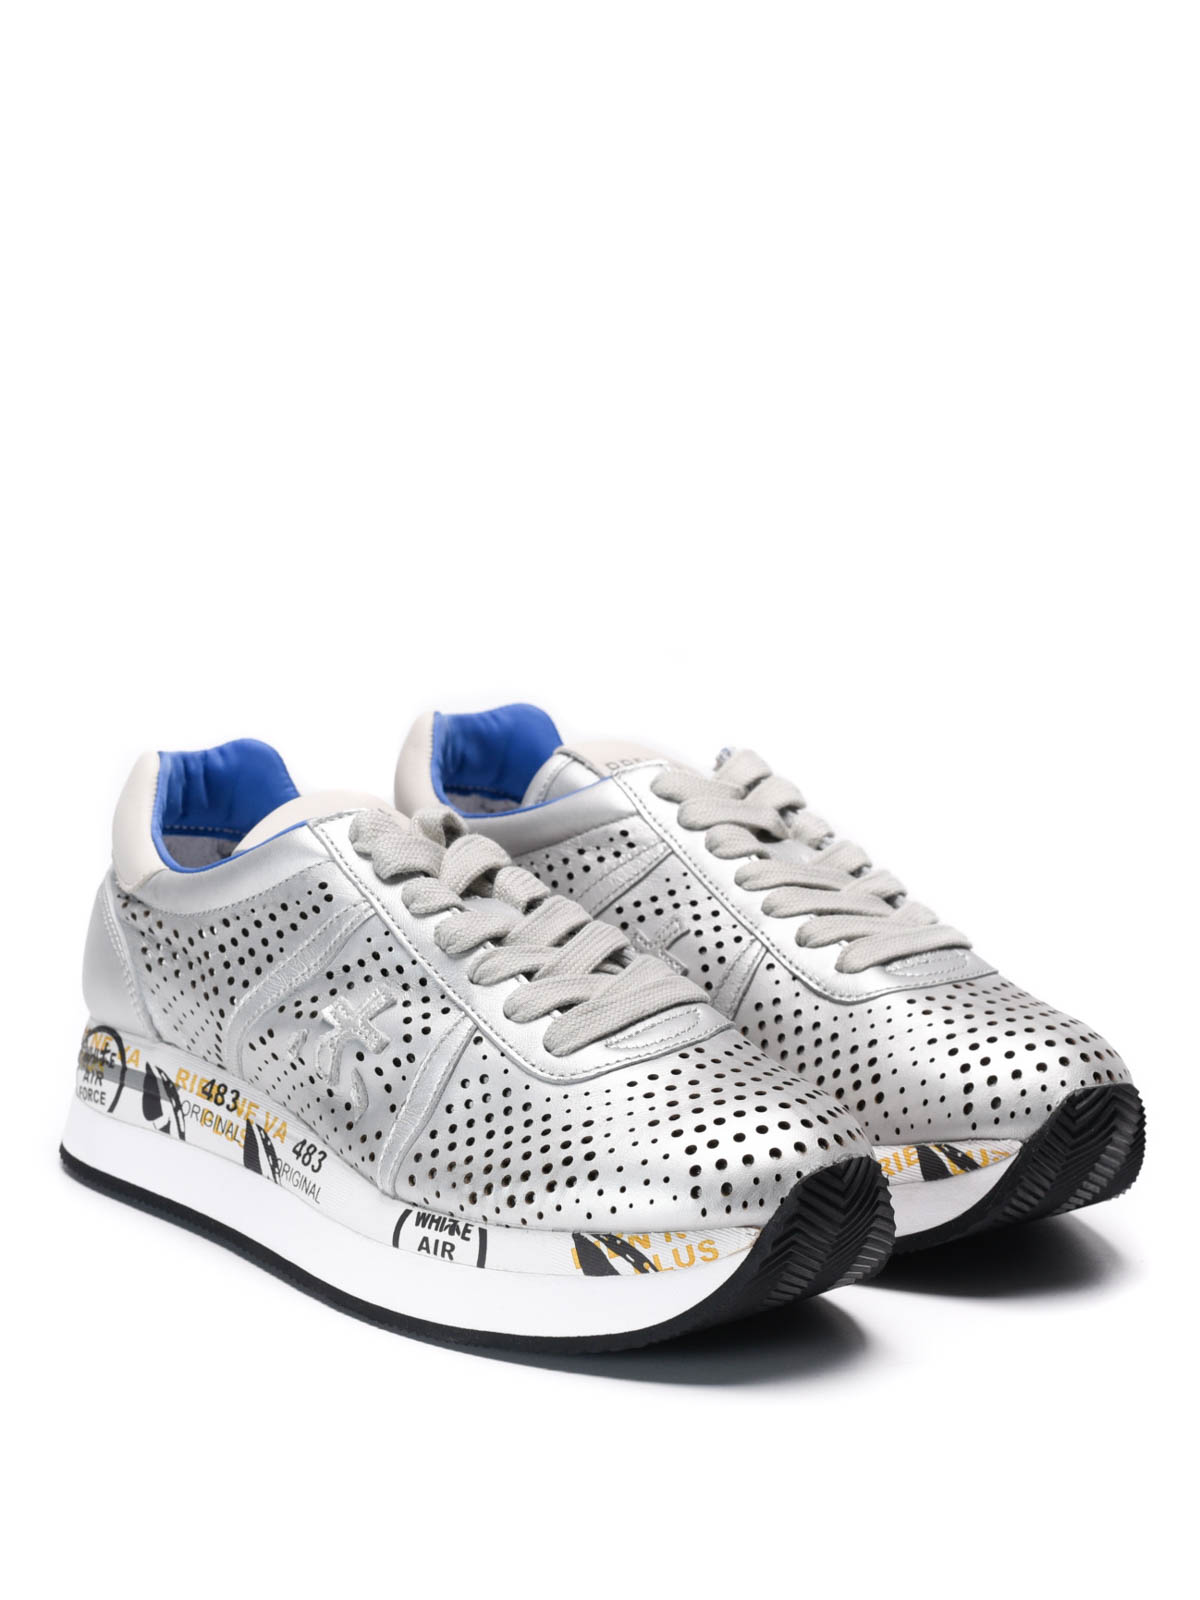 Conny sneakers Premiata